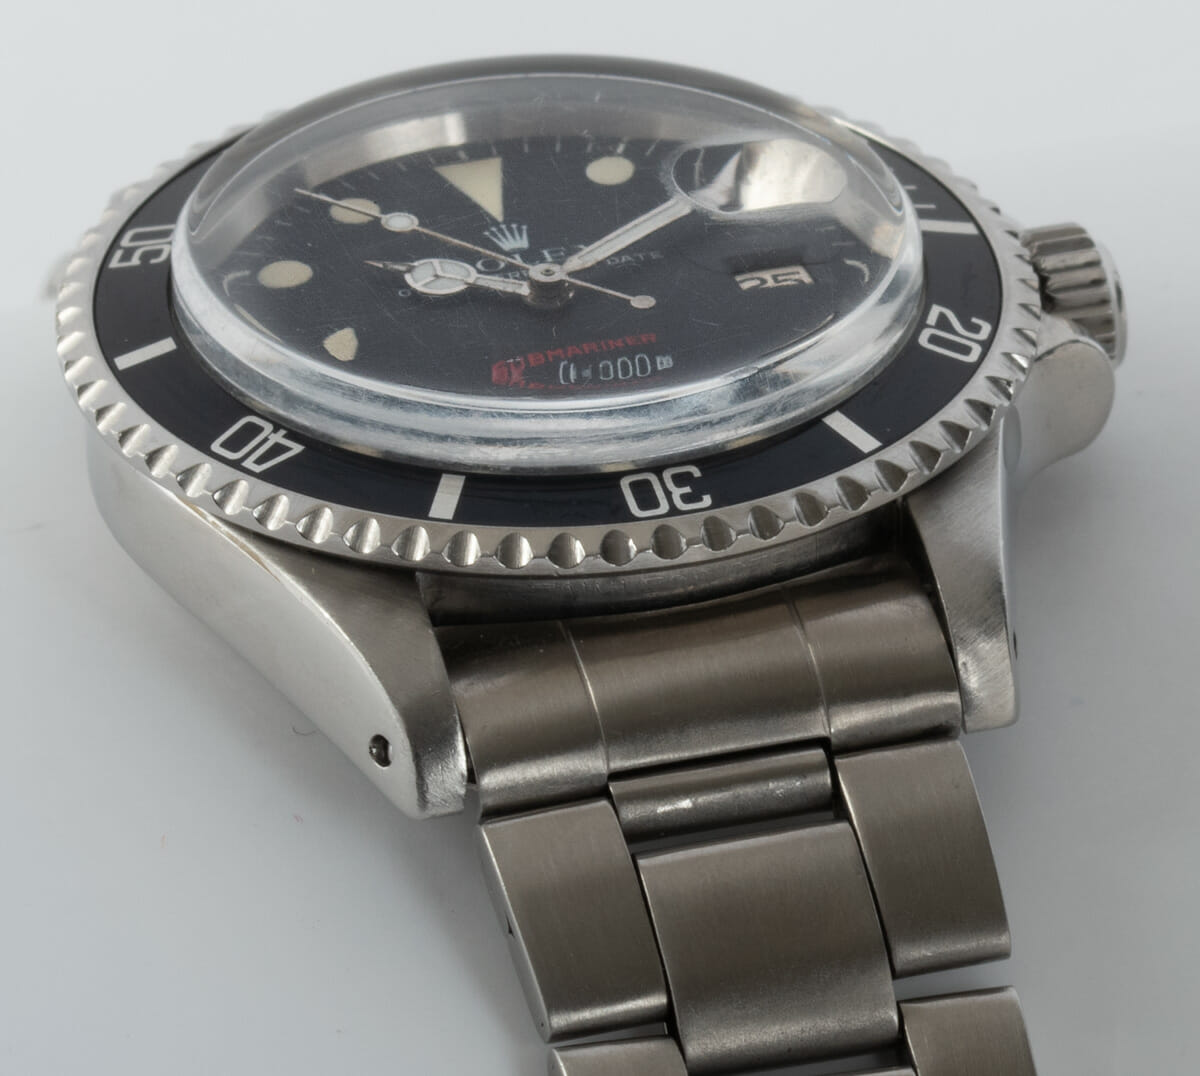 Dial Shot of 'Red' Submariner Date 1680